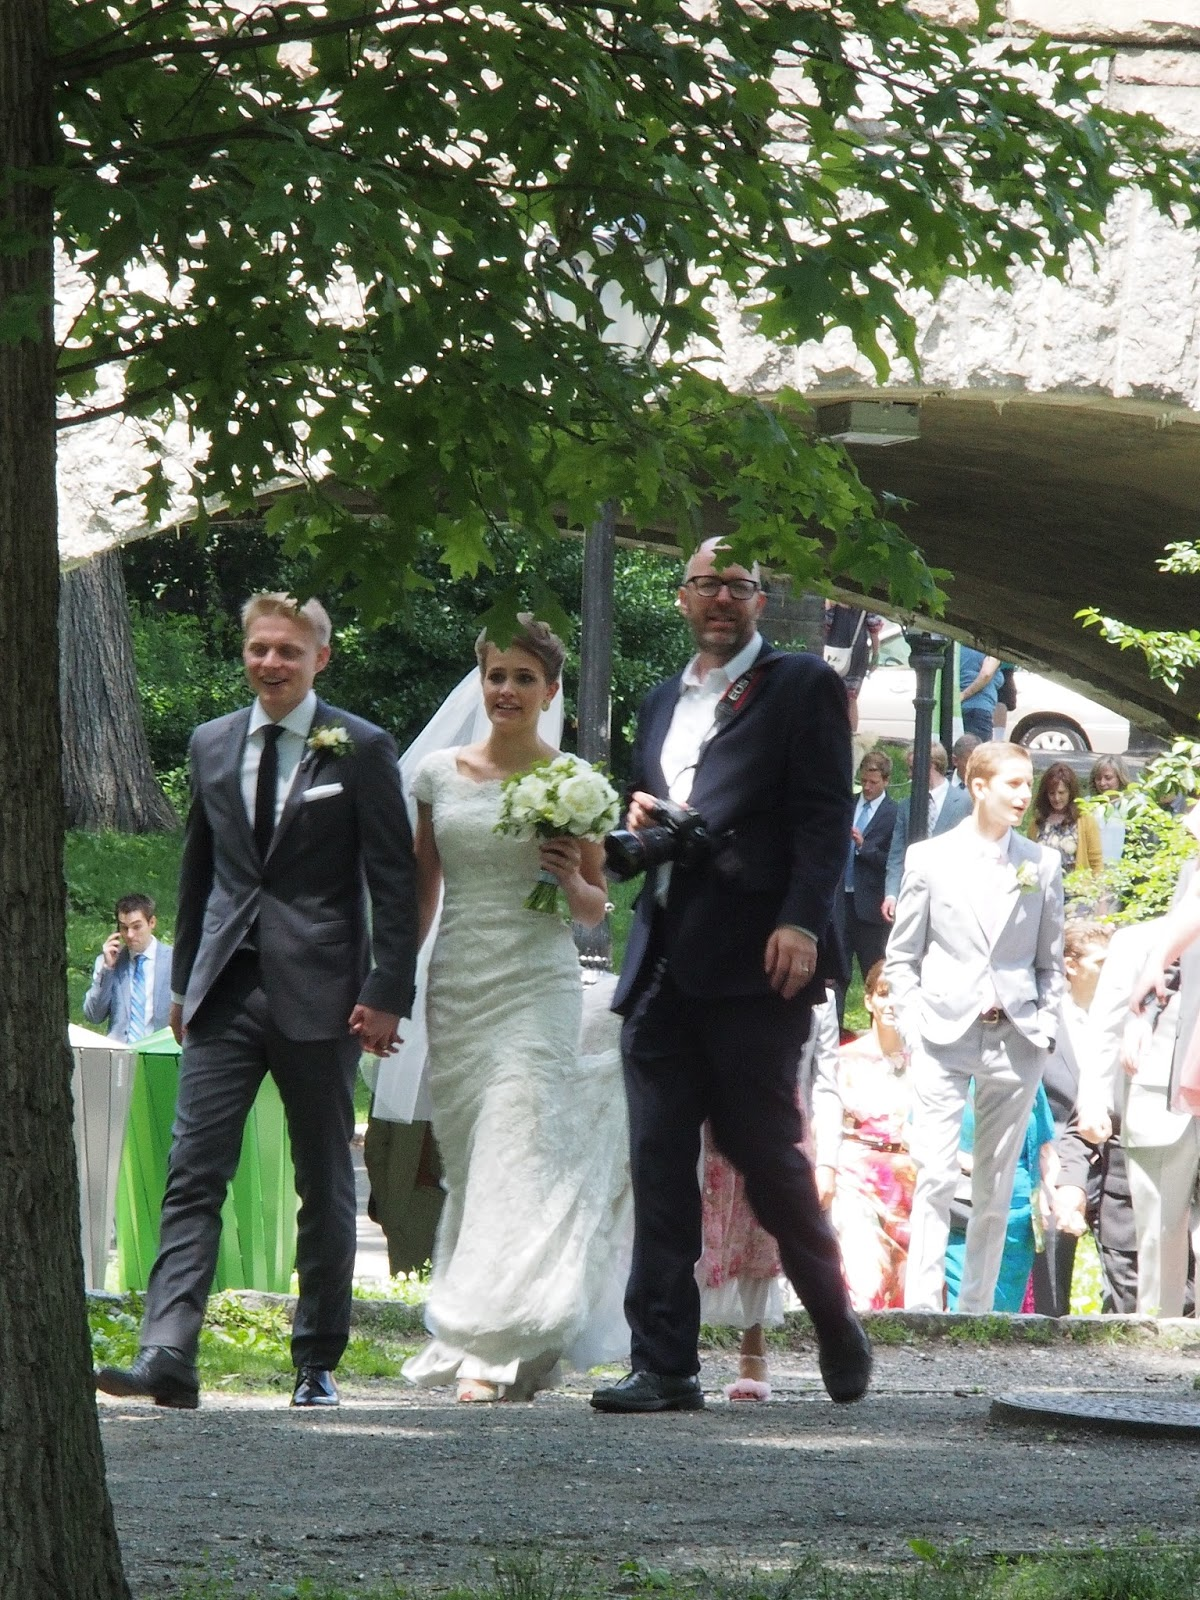 I Think I've been Spotted, #centralpark #nyc #wedding 2014